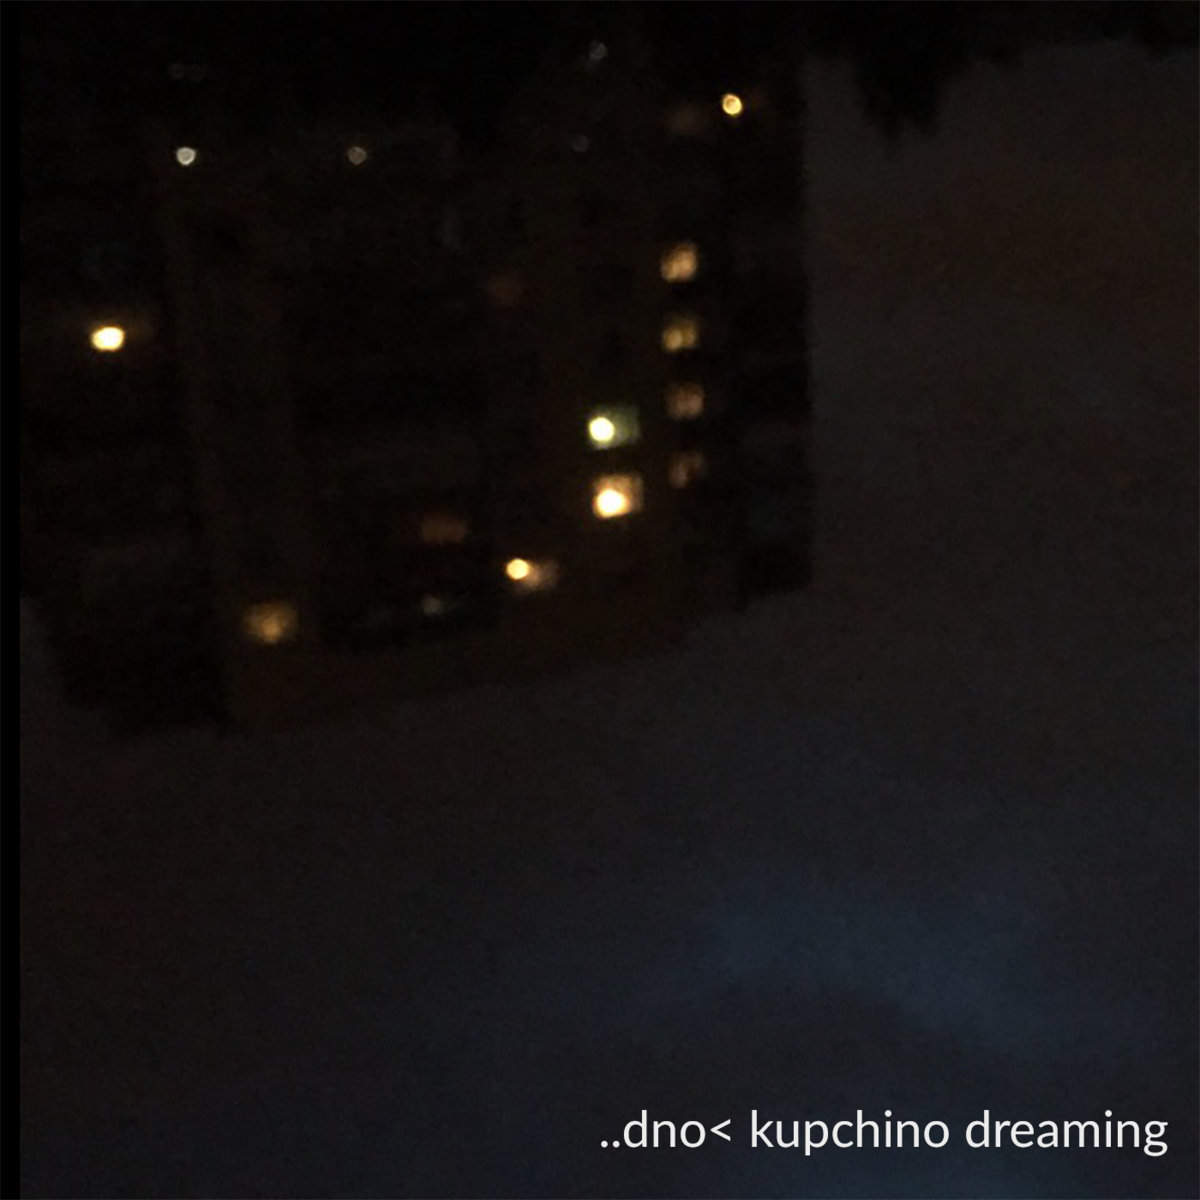 Kupchino dreaming by ..dno< sound theater